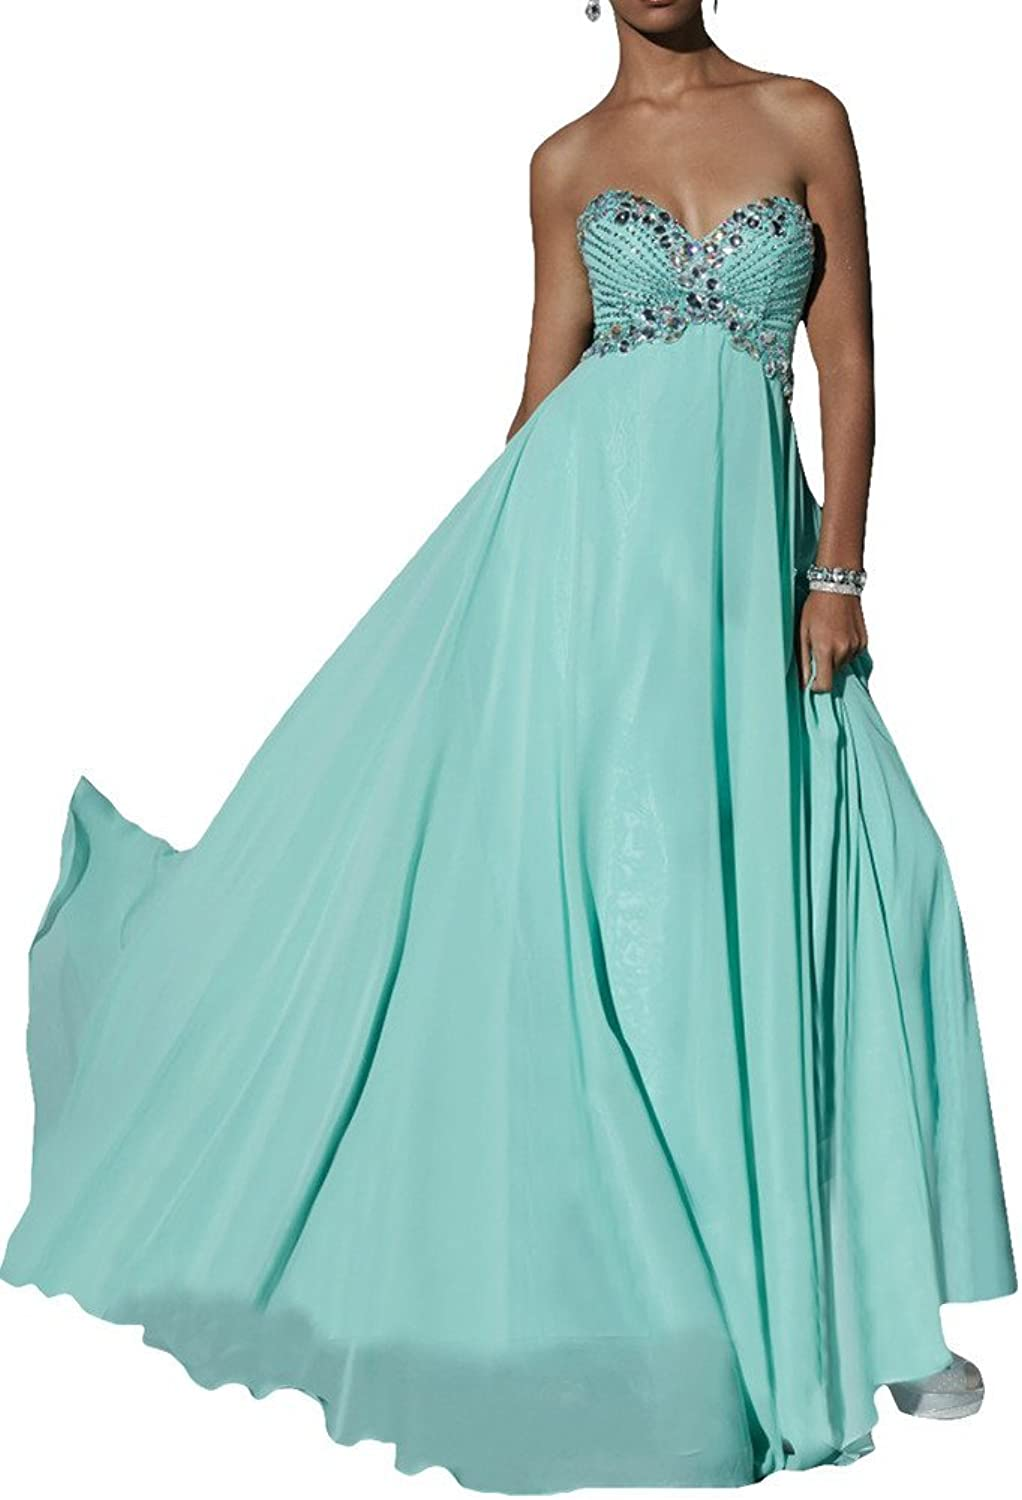 Avril Dress Vintage Beading Sweetheart Empire Prom Evening Party Dress Long